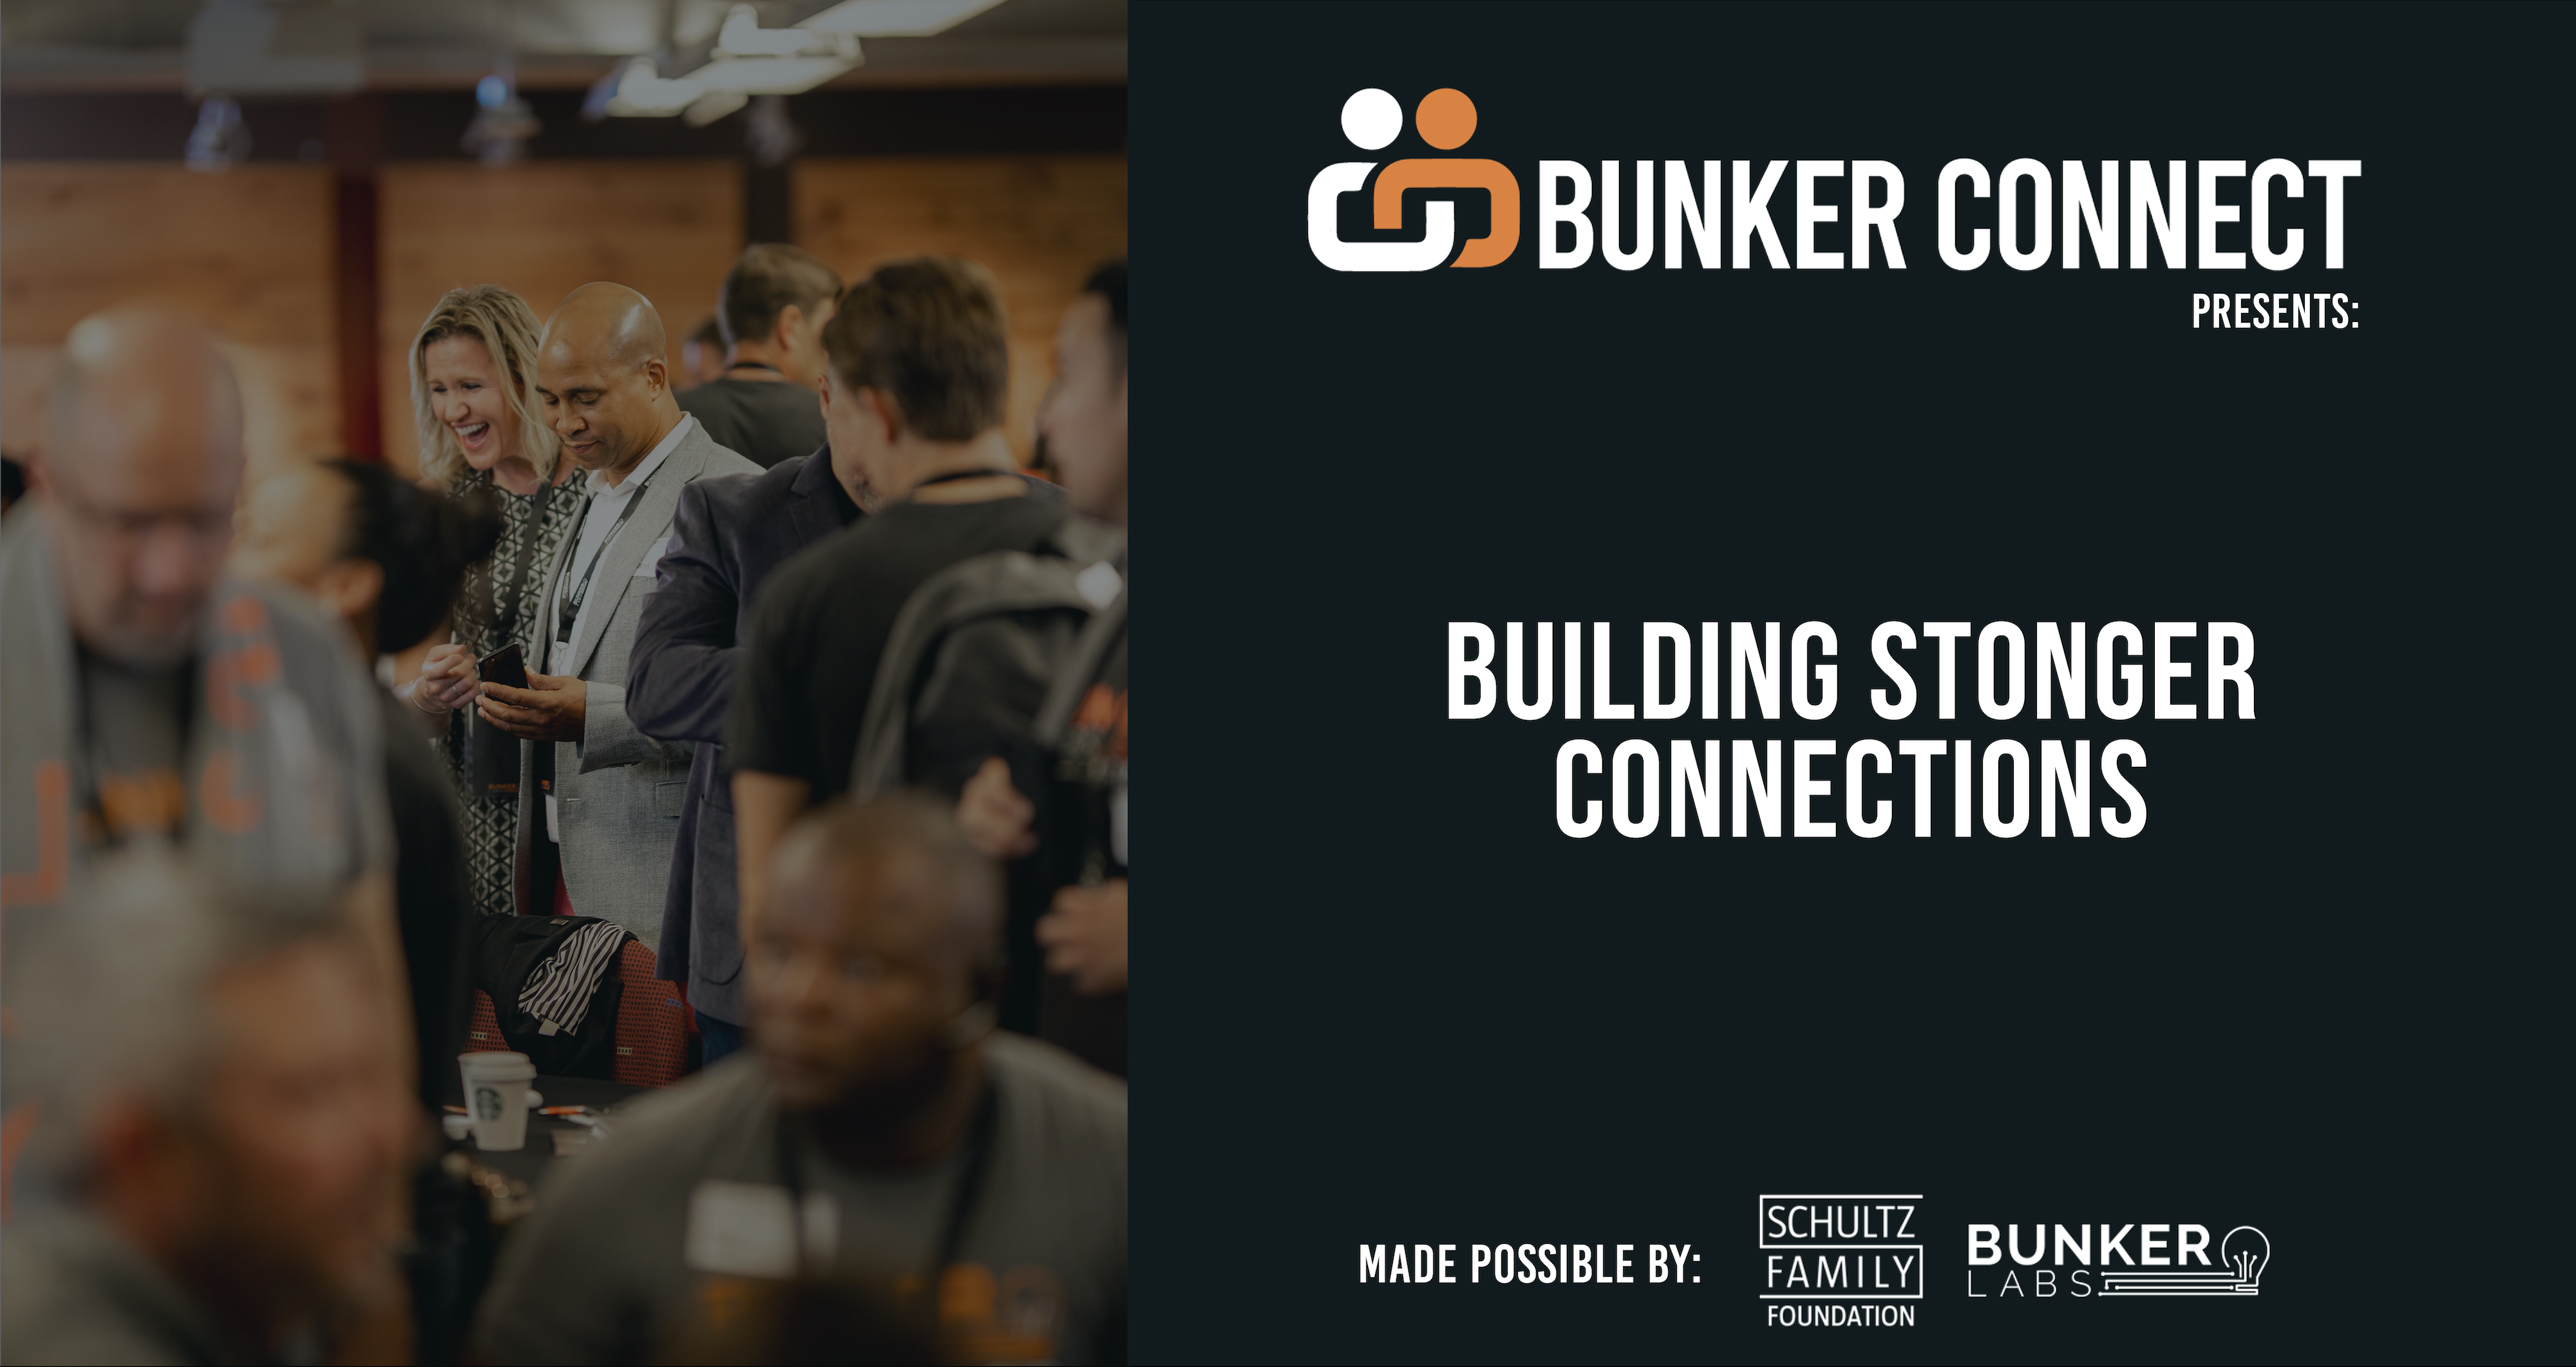 Bunker Connect Boston: Building Stronger Connections